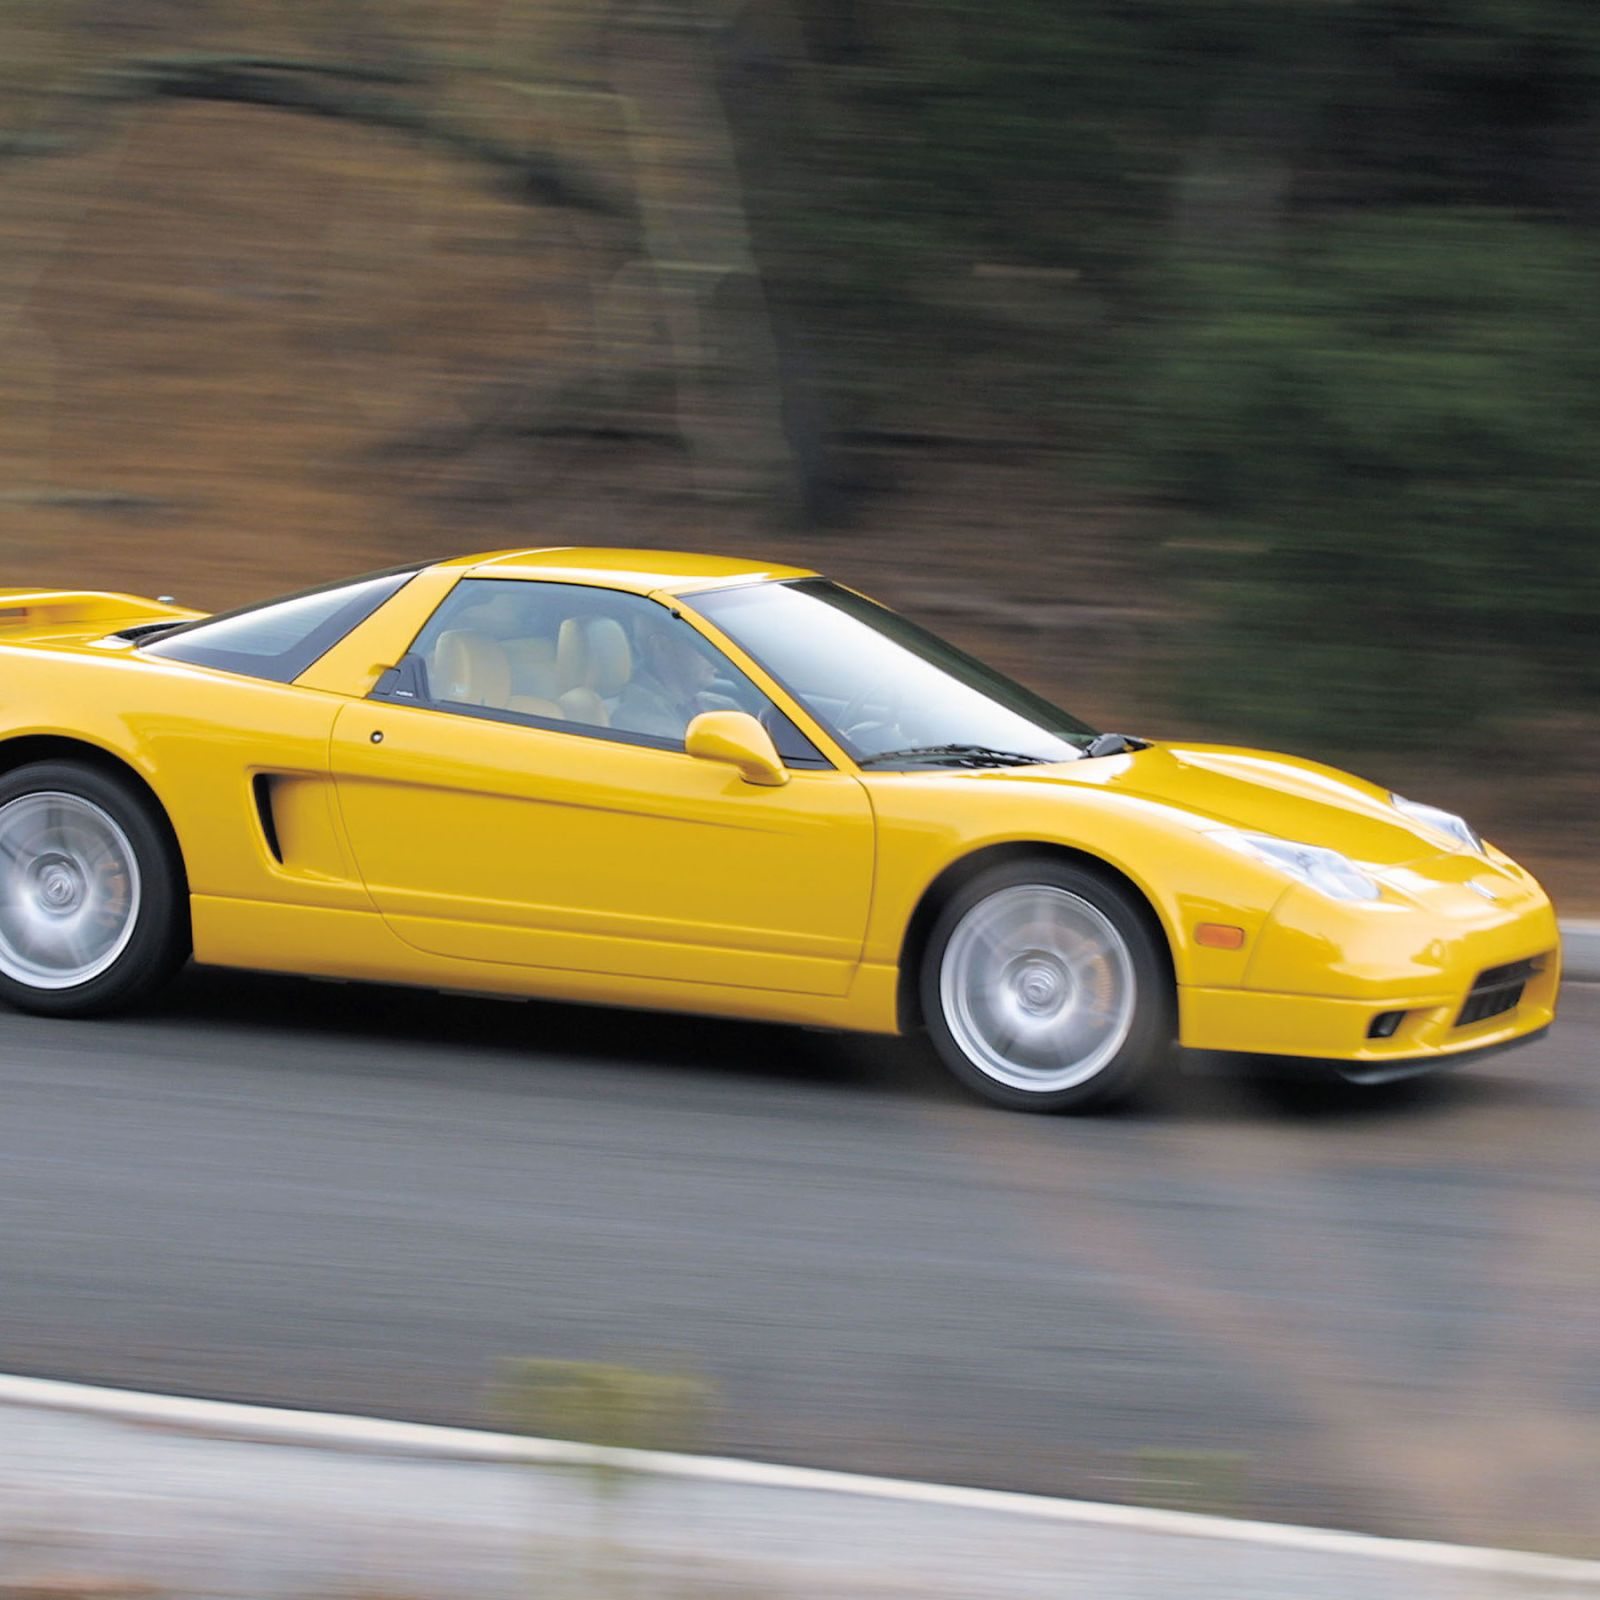 Definition of BEAUTY Acura cars, Nsx, Tuner cars